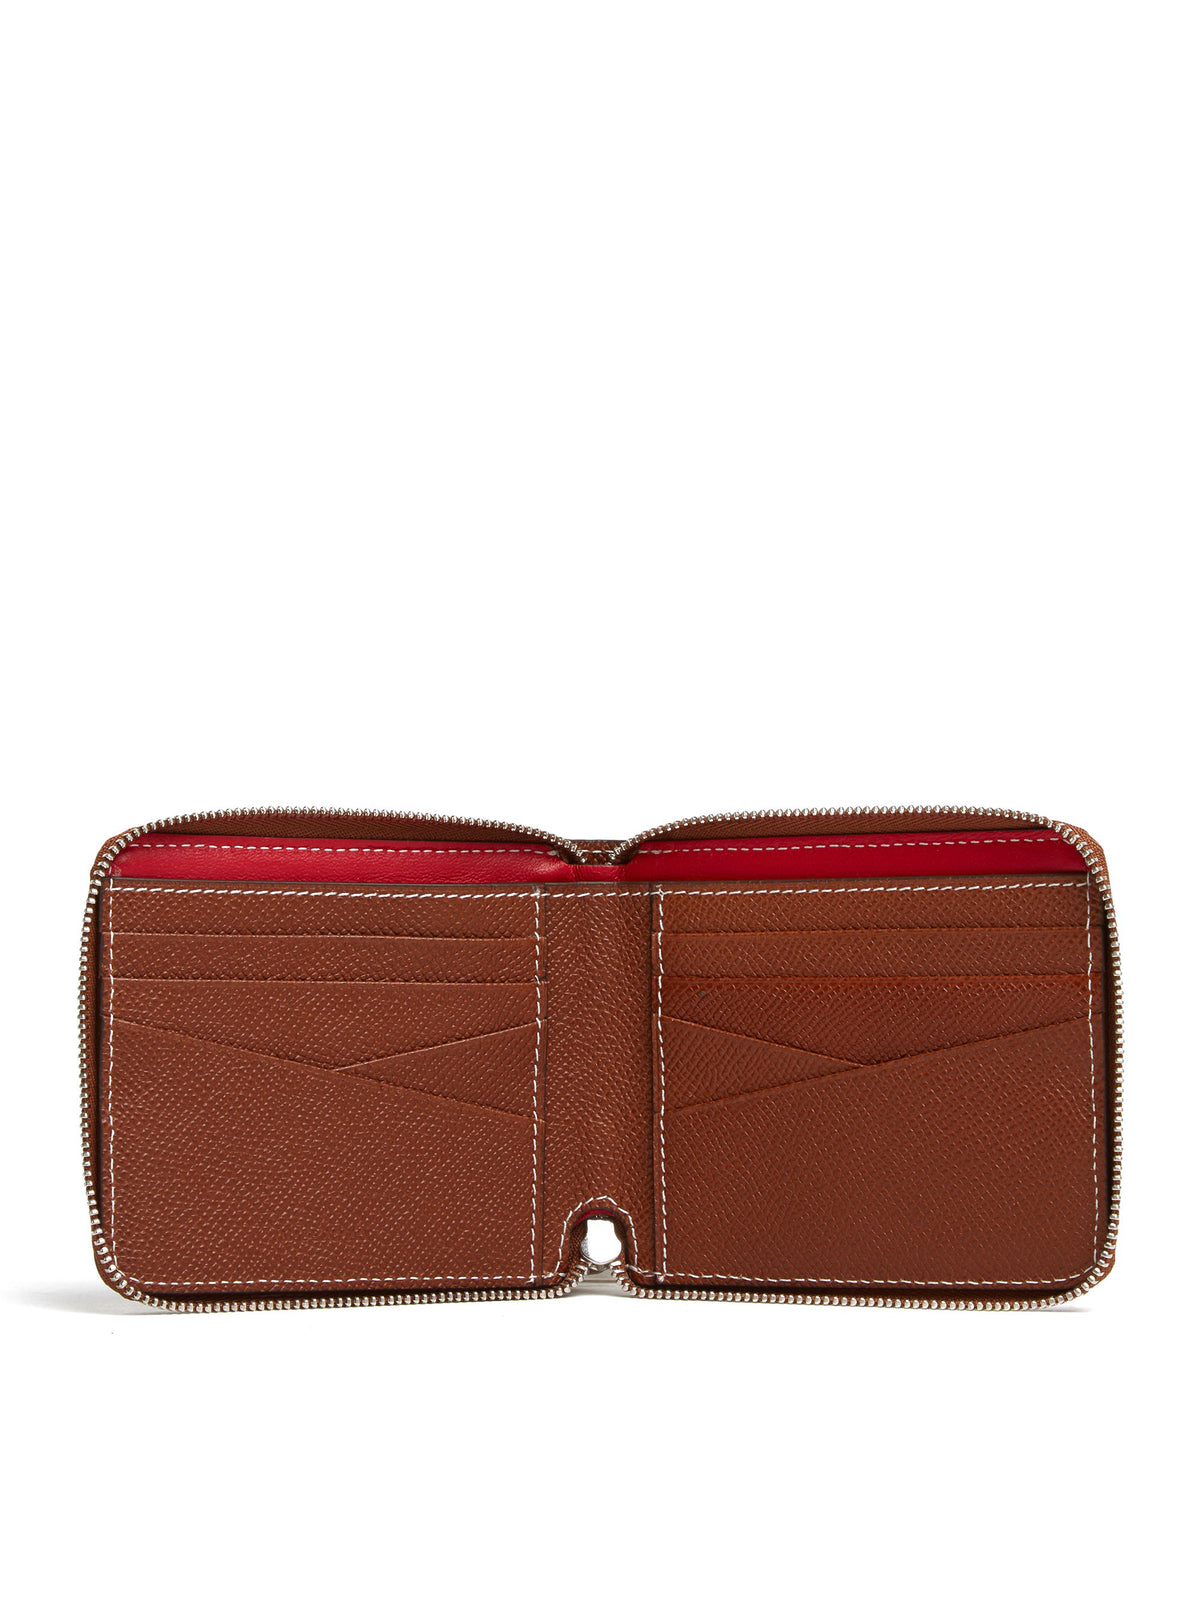 Mark Cross Bi-Fold Leather Zip Wallet Saffiano Acorn Interior